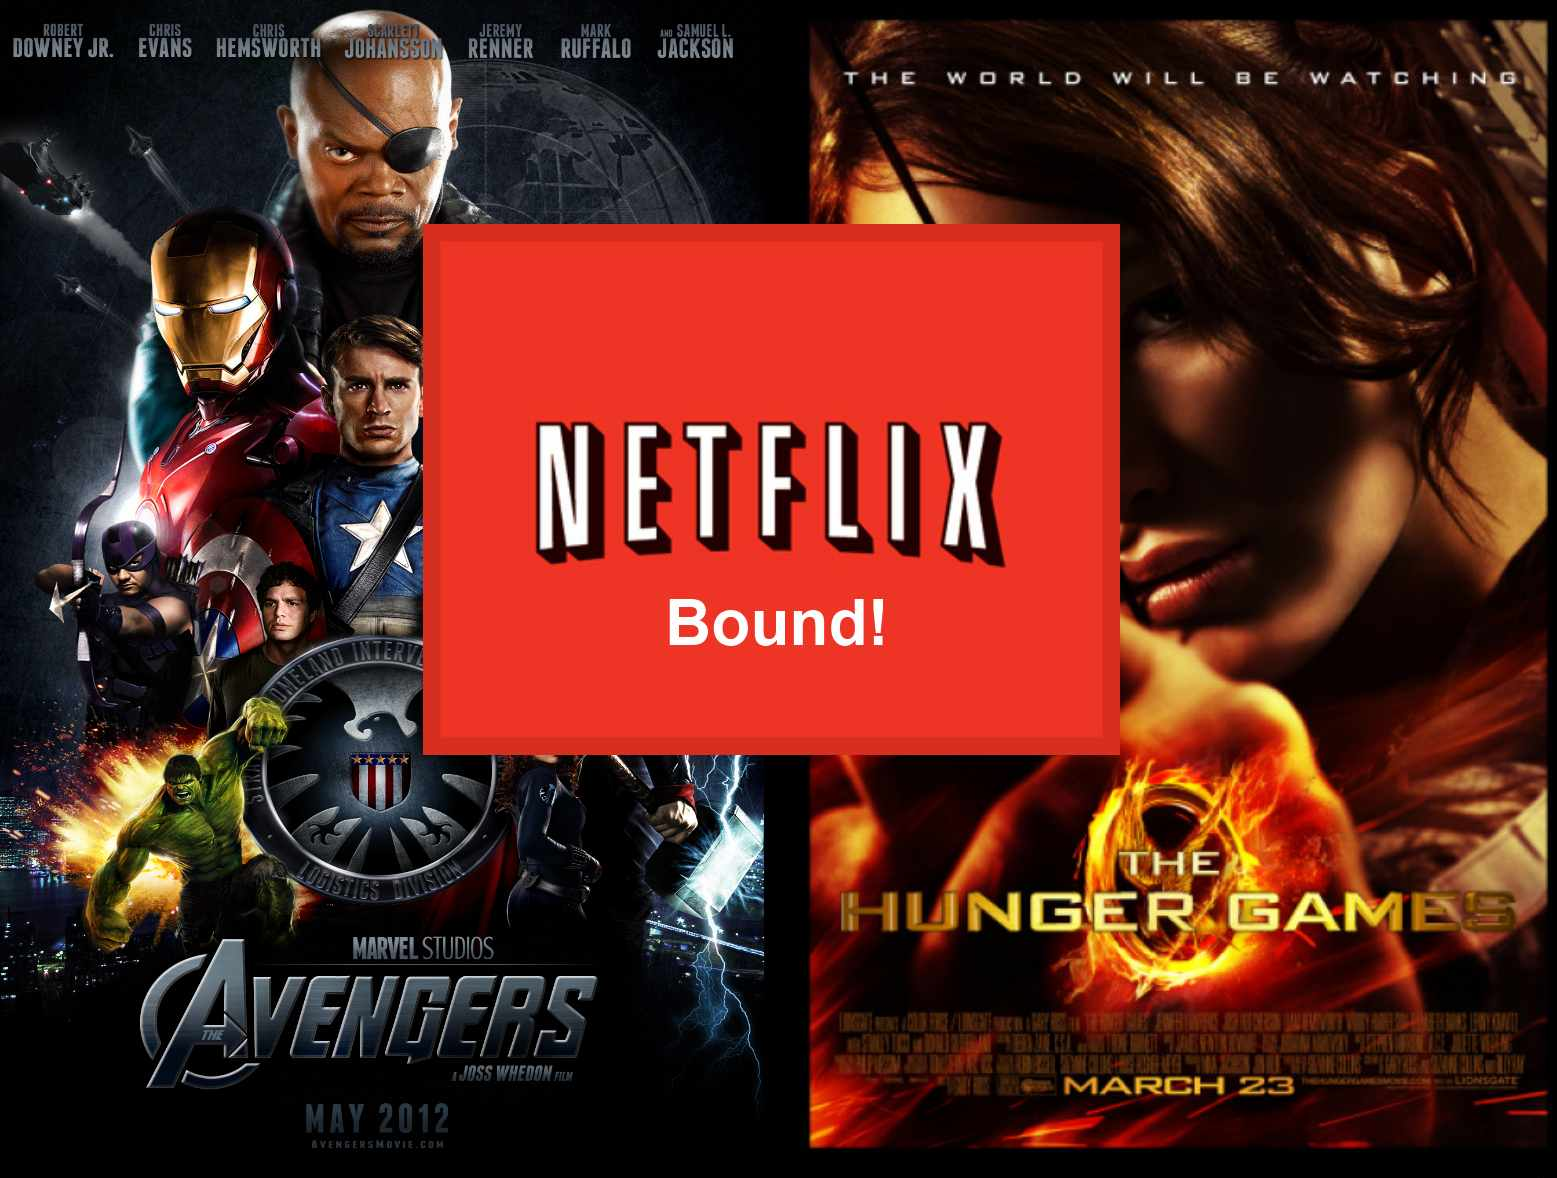 Report: Netflix streaming to get 'The Avengers' & 'The Hunger Games'